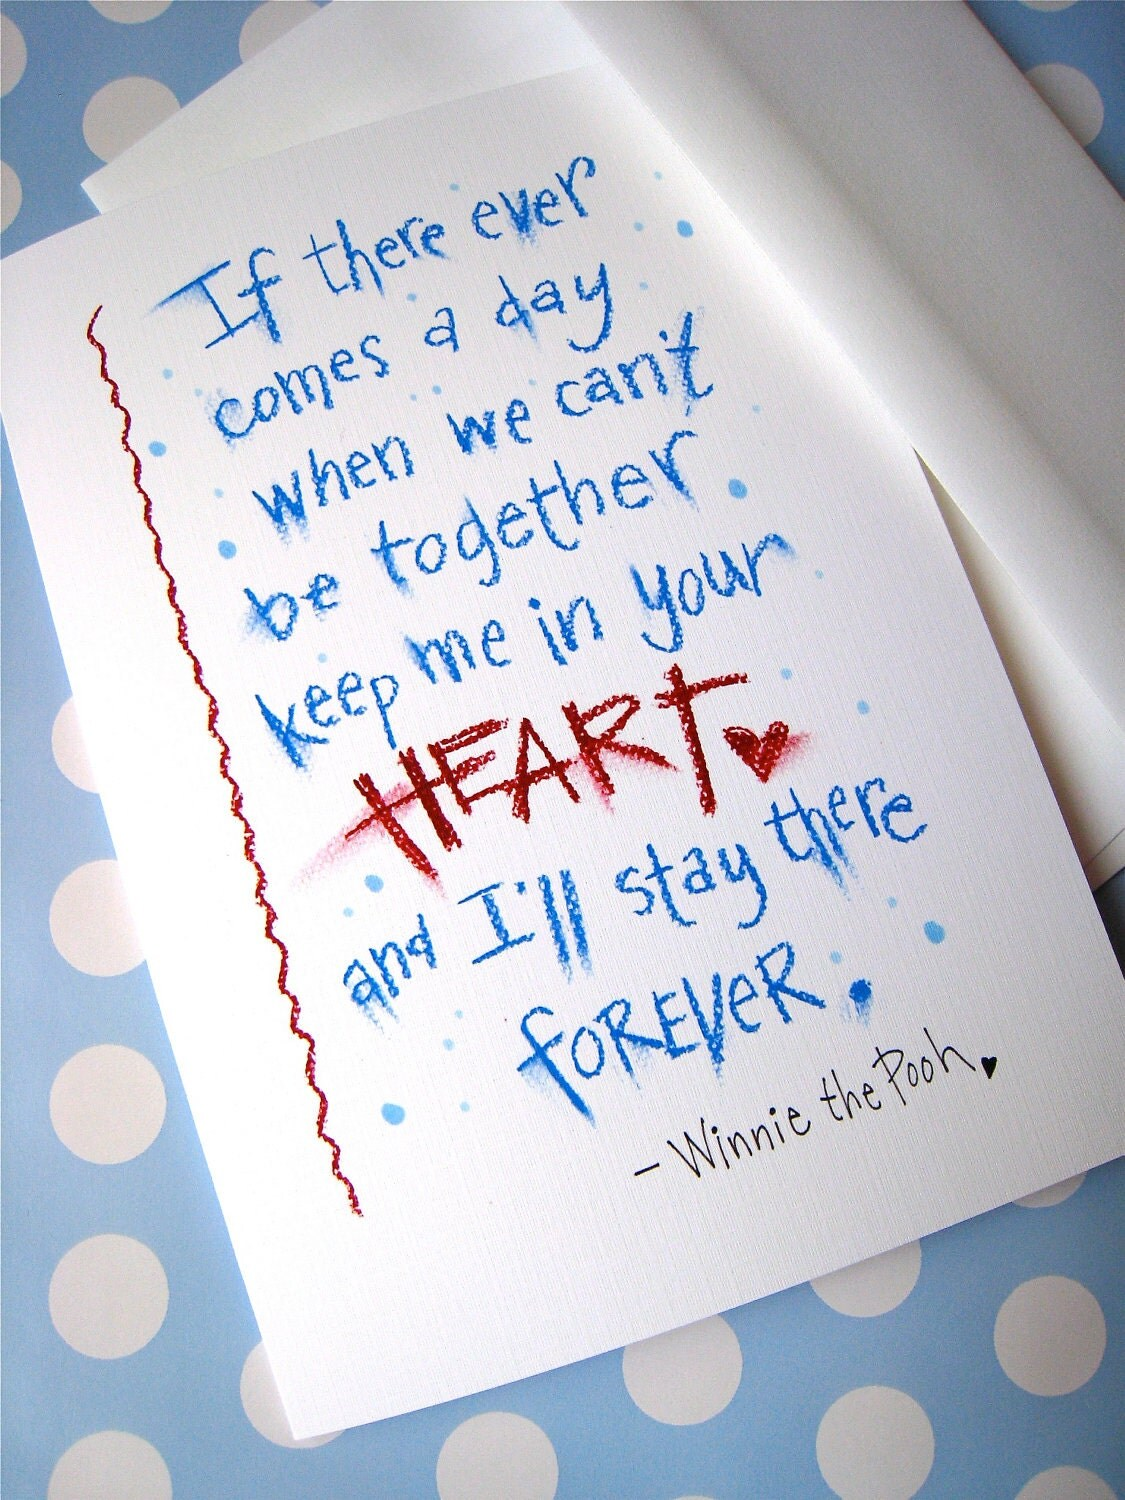 Valentine Card. I Love You Card. Winnie the Pooh Quote - Keep Me in Your Heart